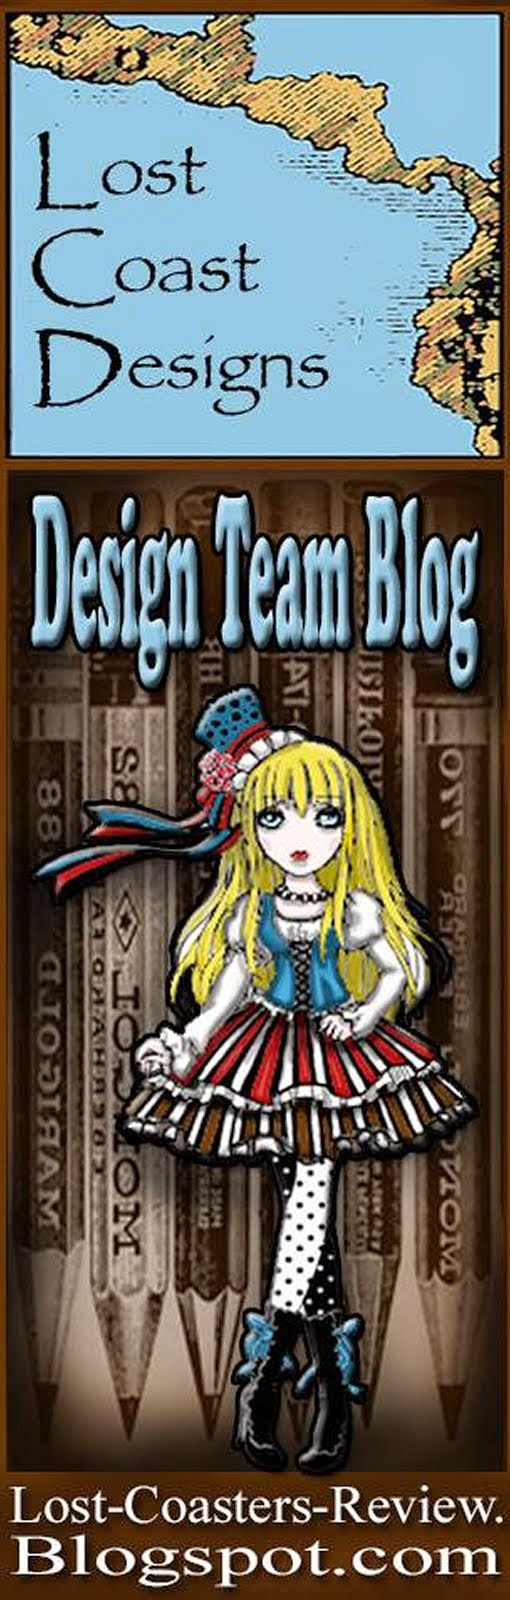 Design Team Blog